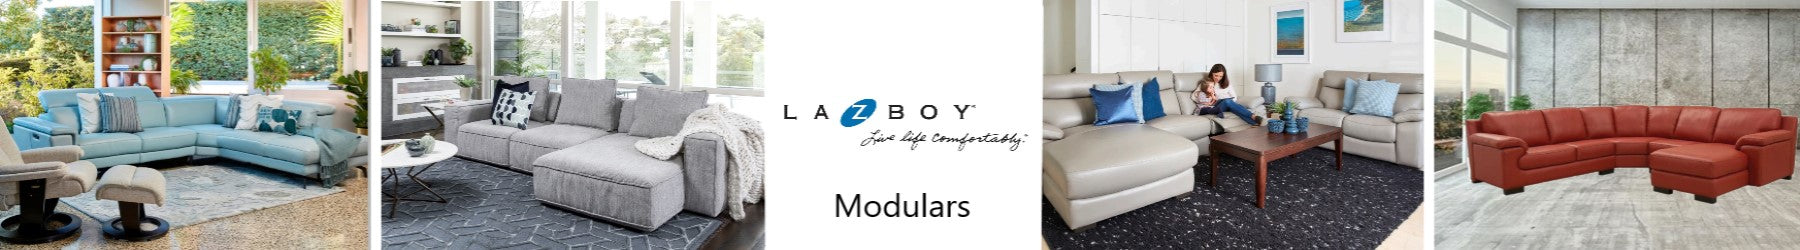 Lazy Boy Modular Lounges